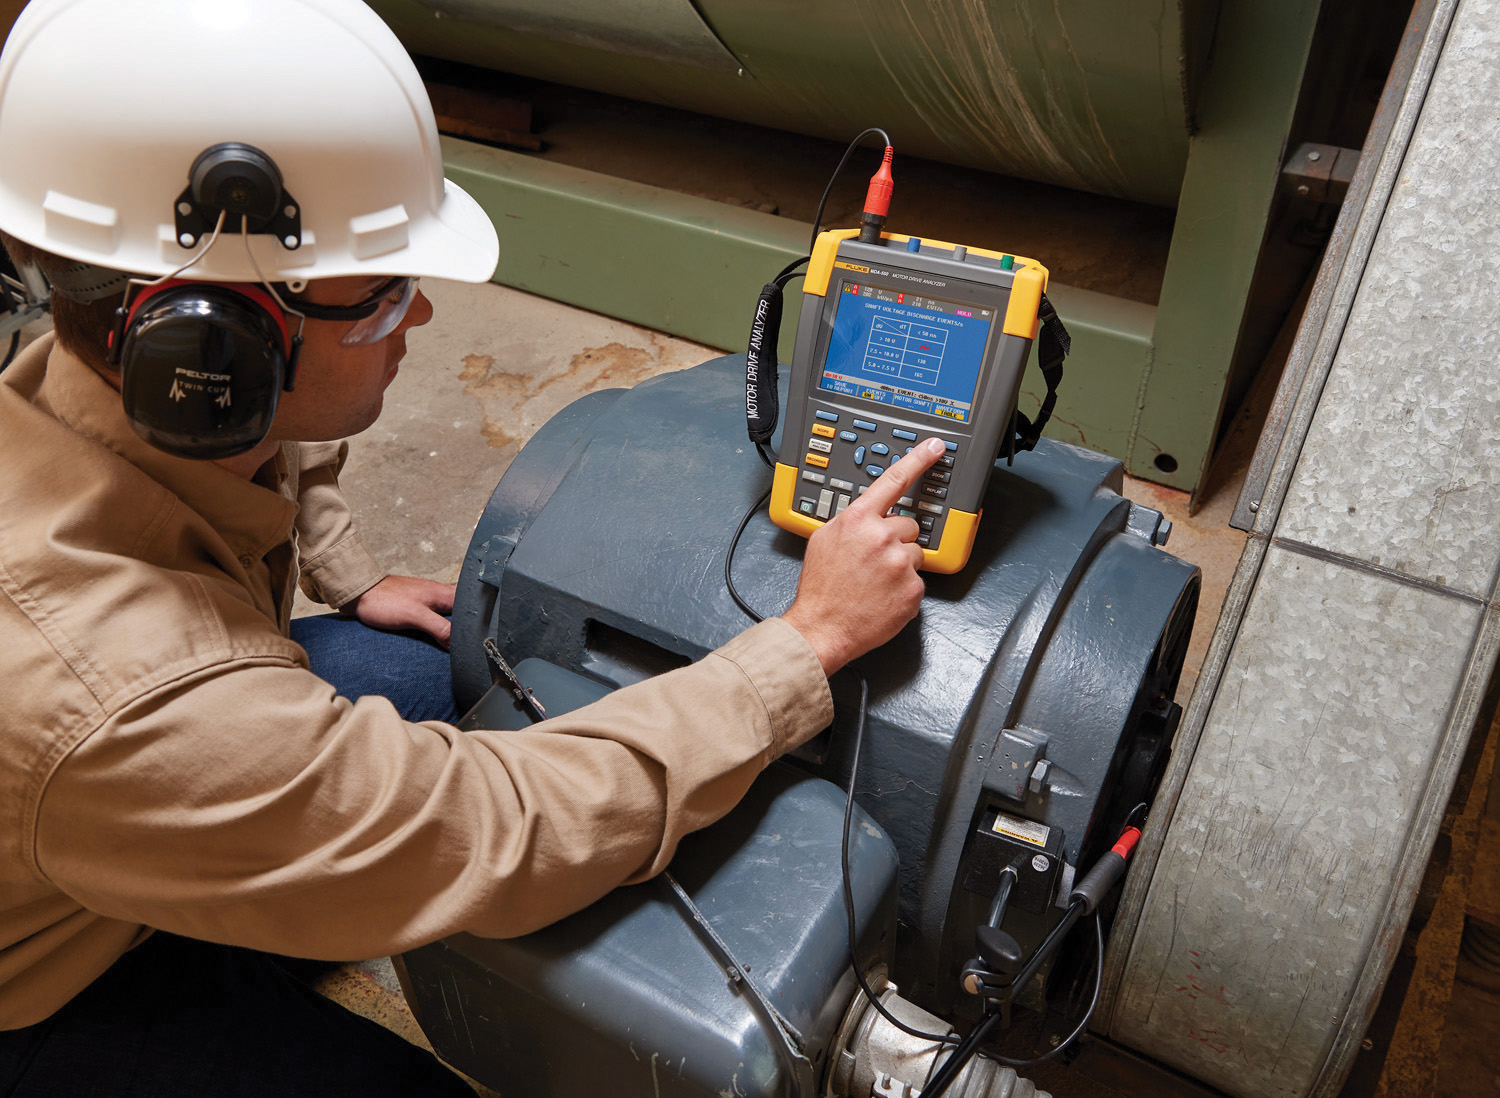 The Fluke MDA 350 motor drive analyzer guides users through setup and testing.